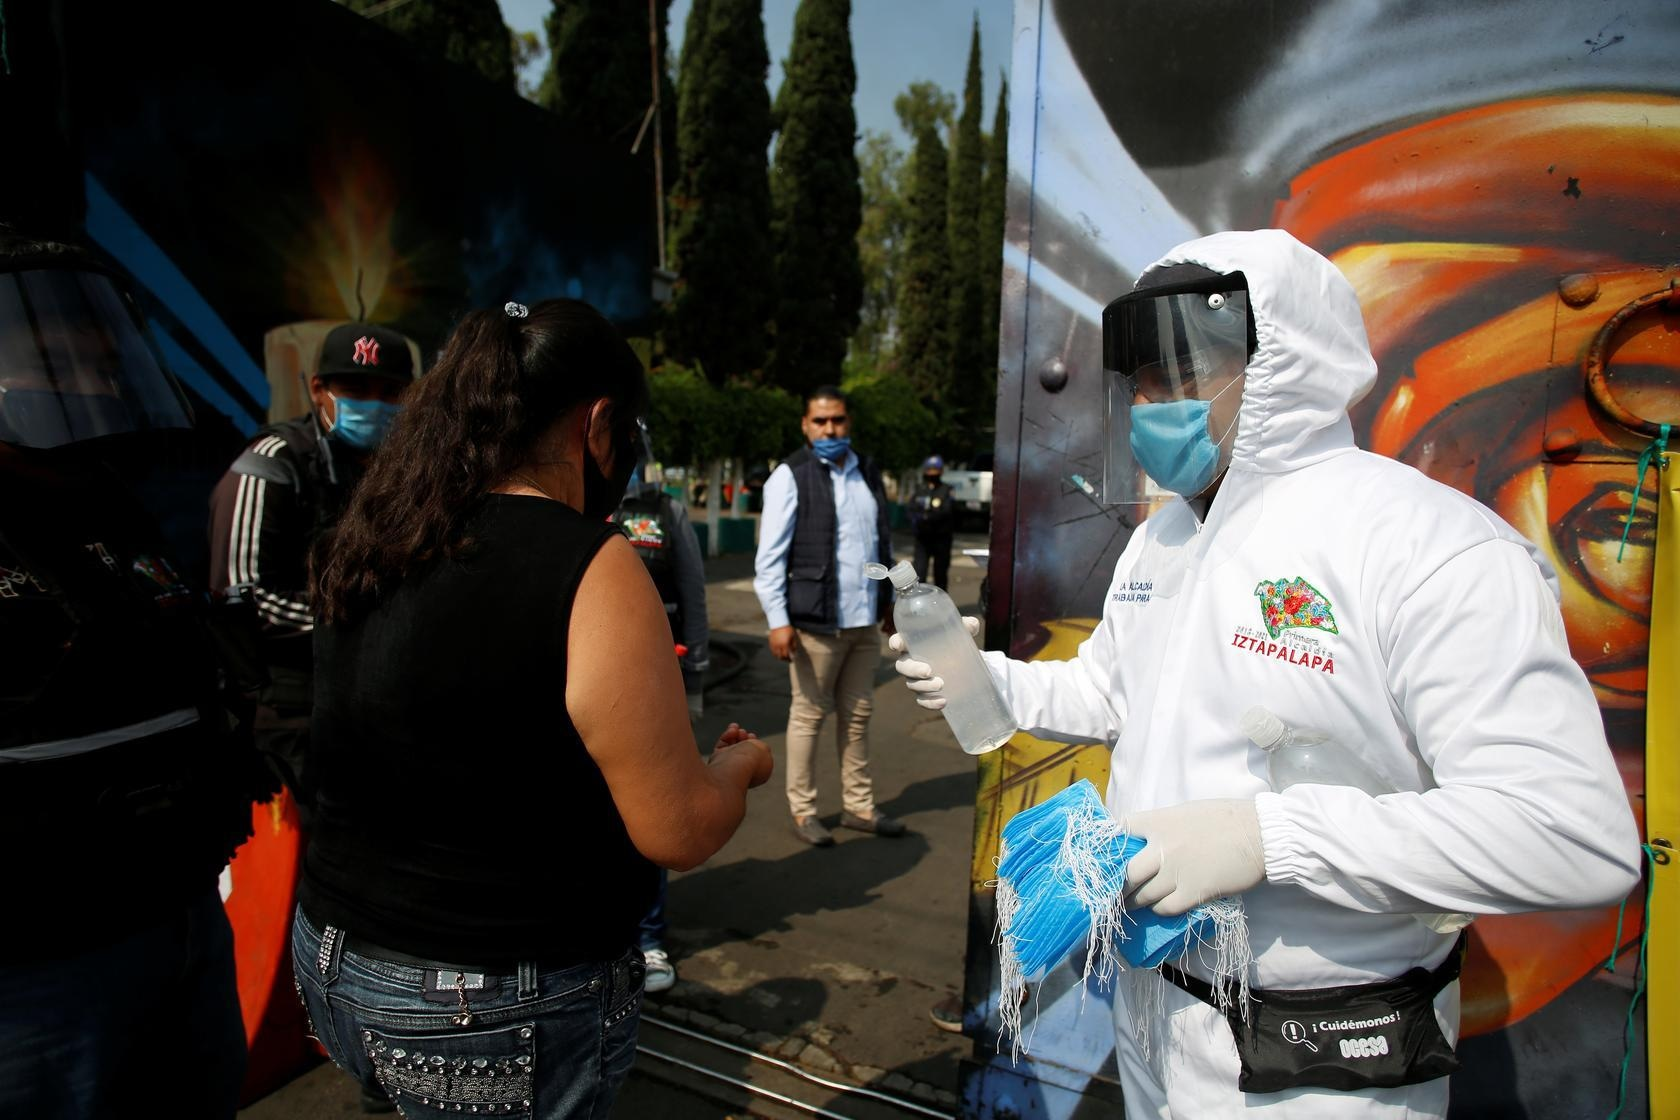 An employee of the municipality of Iztapalapa gives sanitising gel to a woman arriving to the San Nicolas Tolentino cemetery, amid Covid-19 outbreak in Mexico City, Mexico, May 9. — Reuters